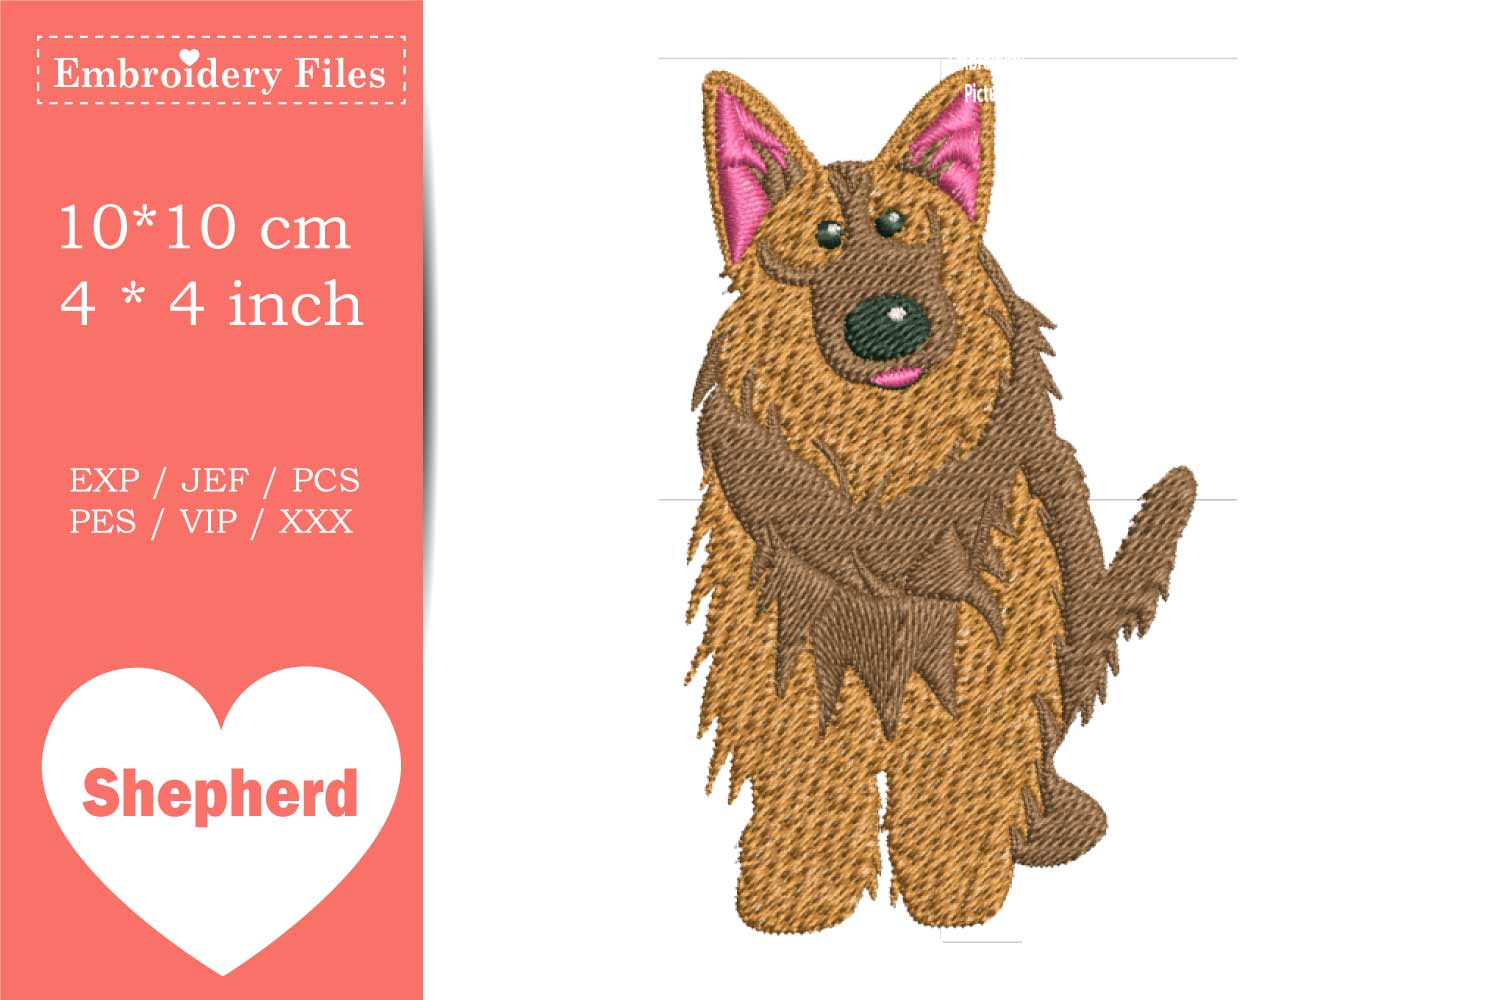 Dogs - Mini Bundle - Embroidery Files example image 2